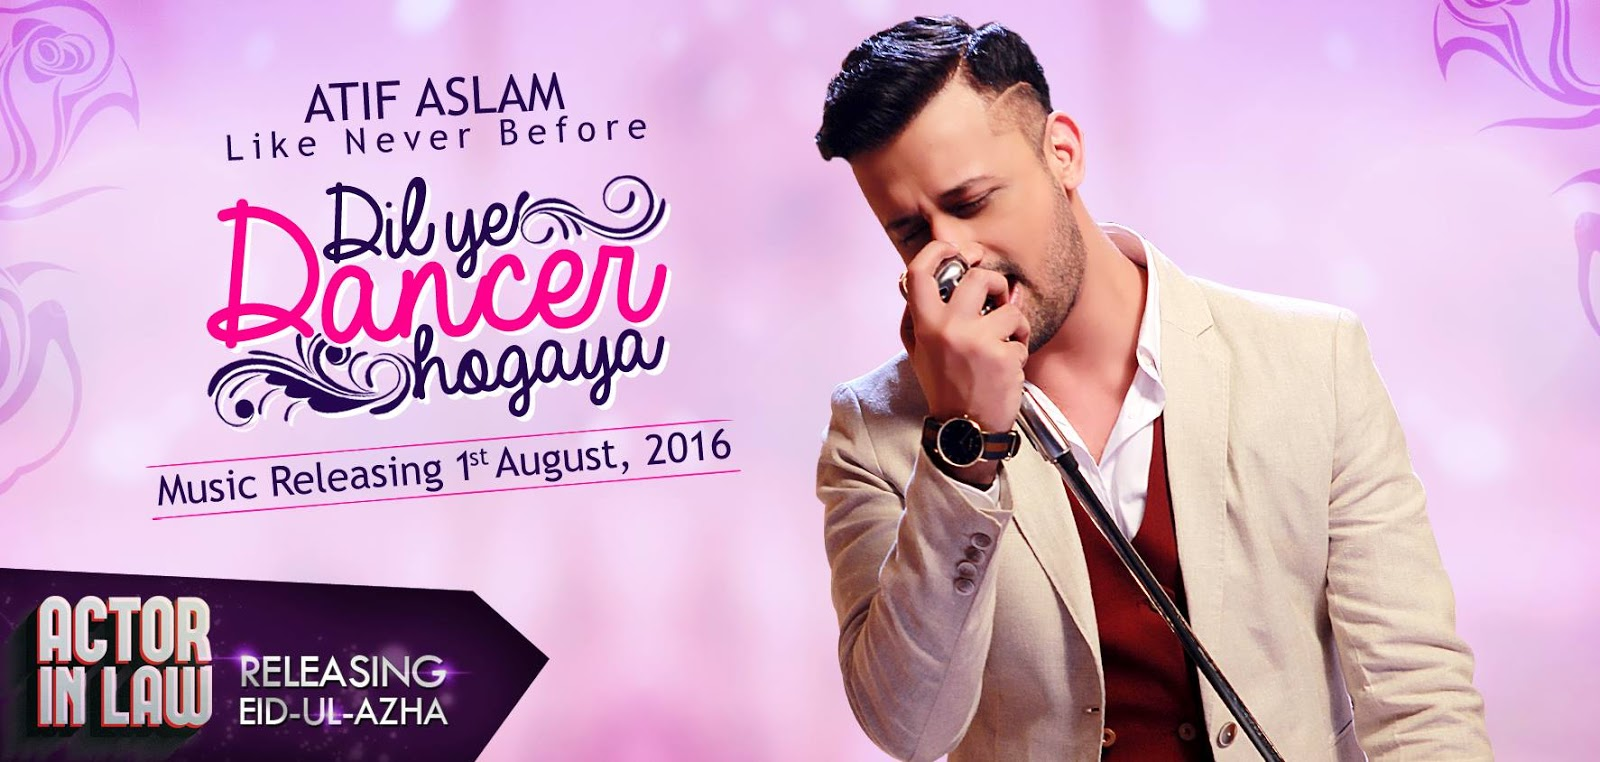 Latest Atif Aslam Songs 2016 Free Download